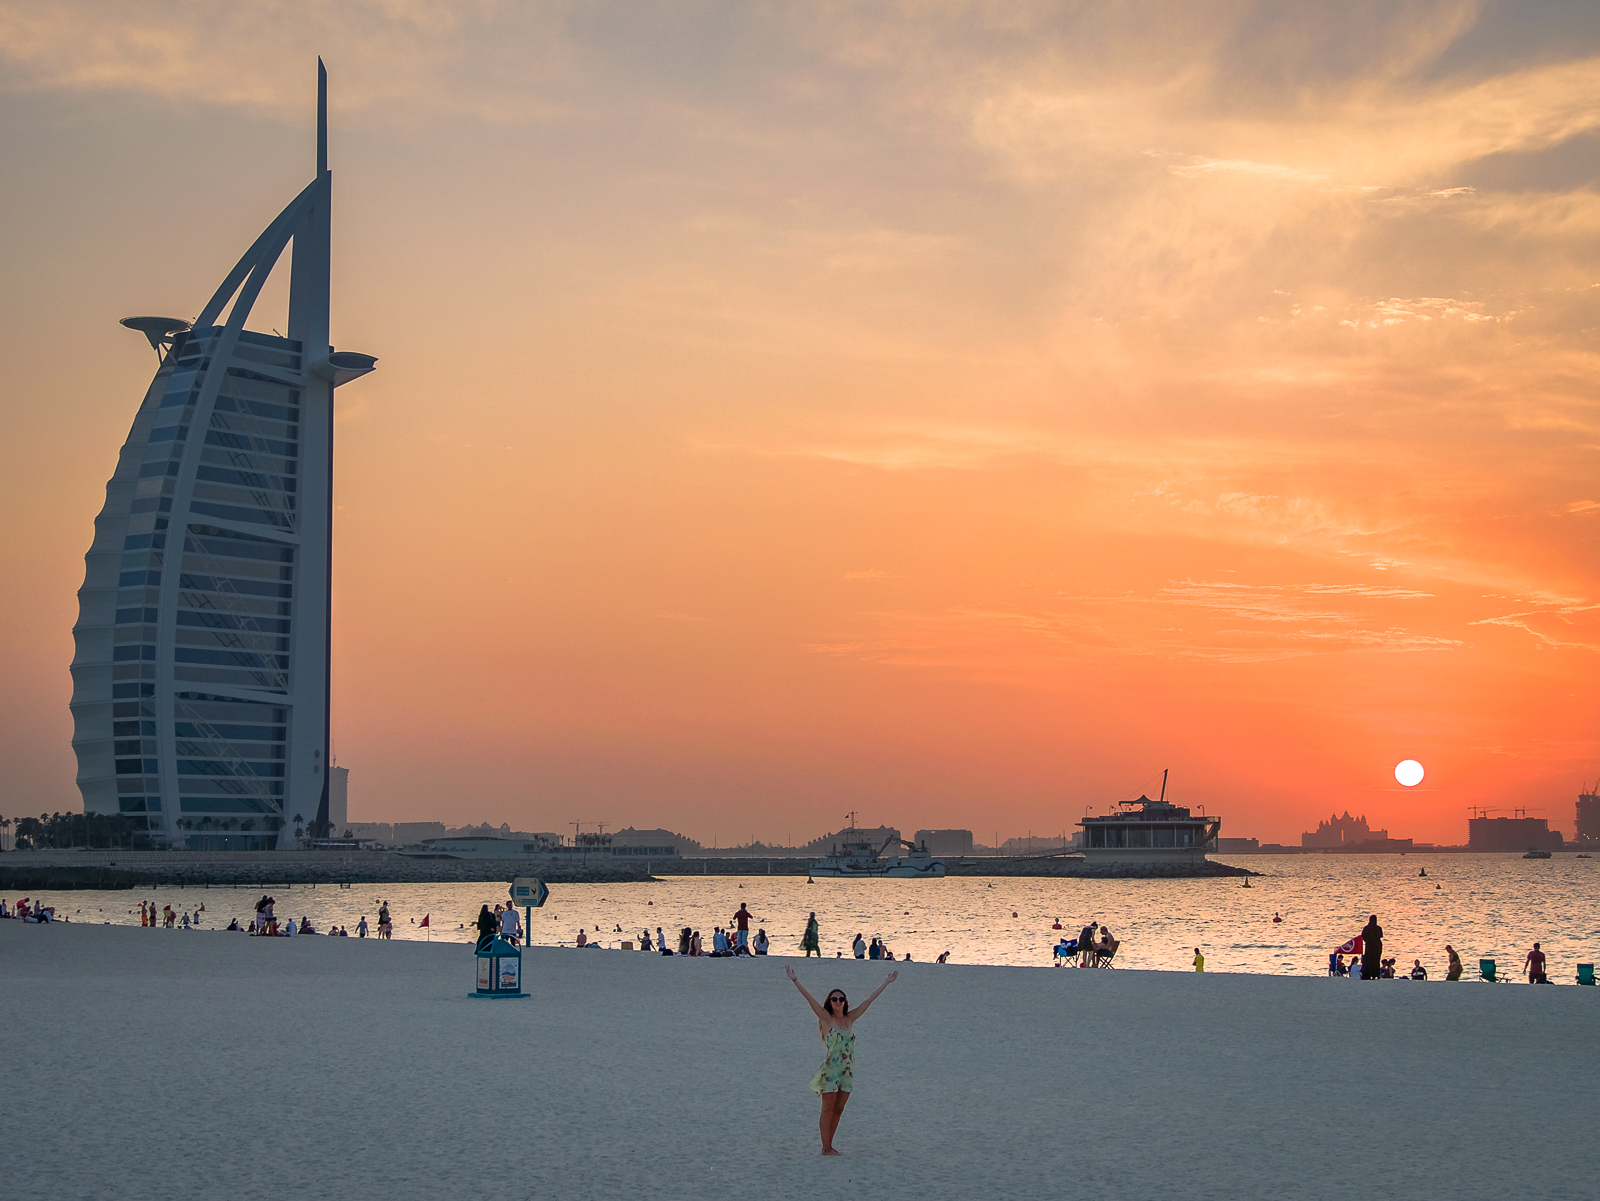 Sunset Beach at sunset in Dubai